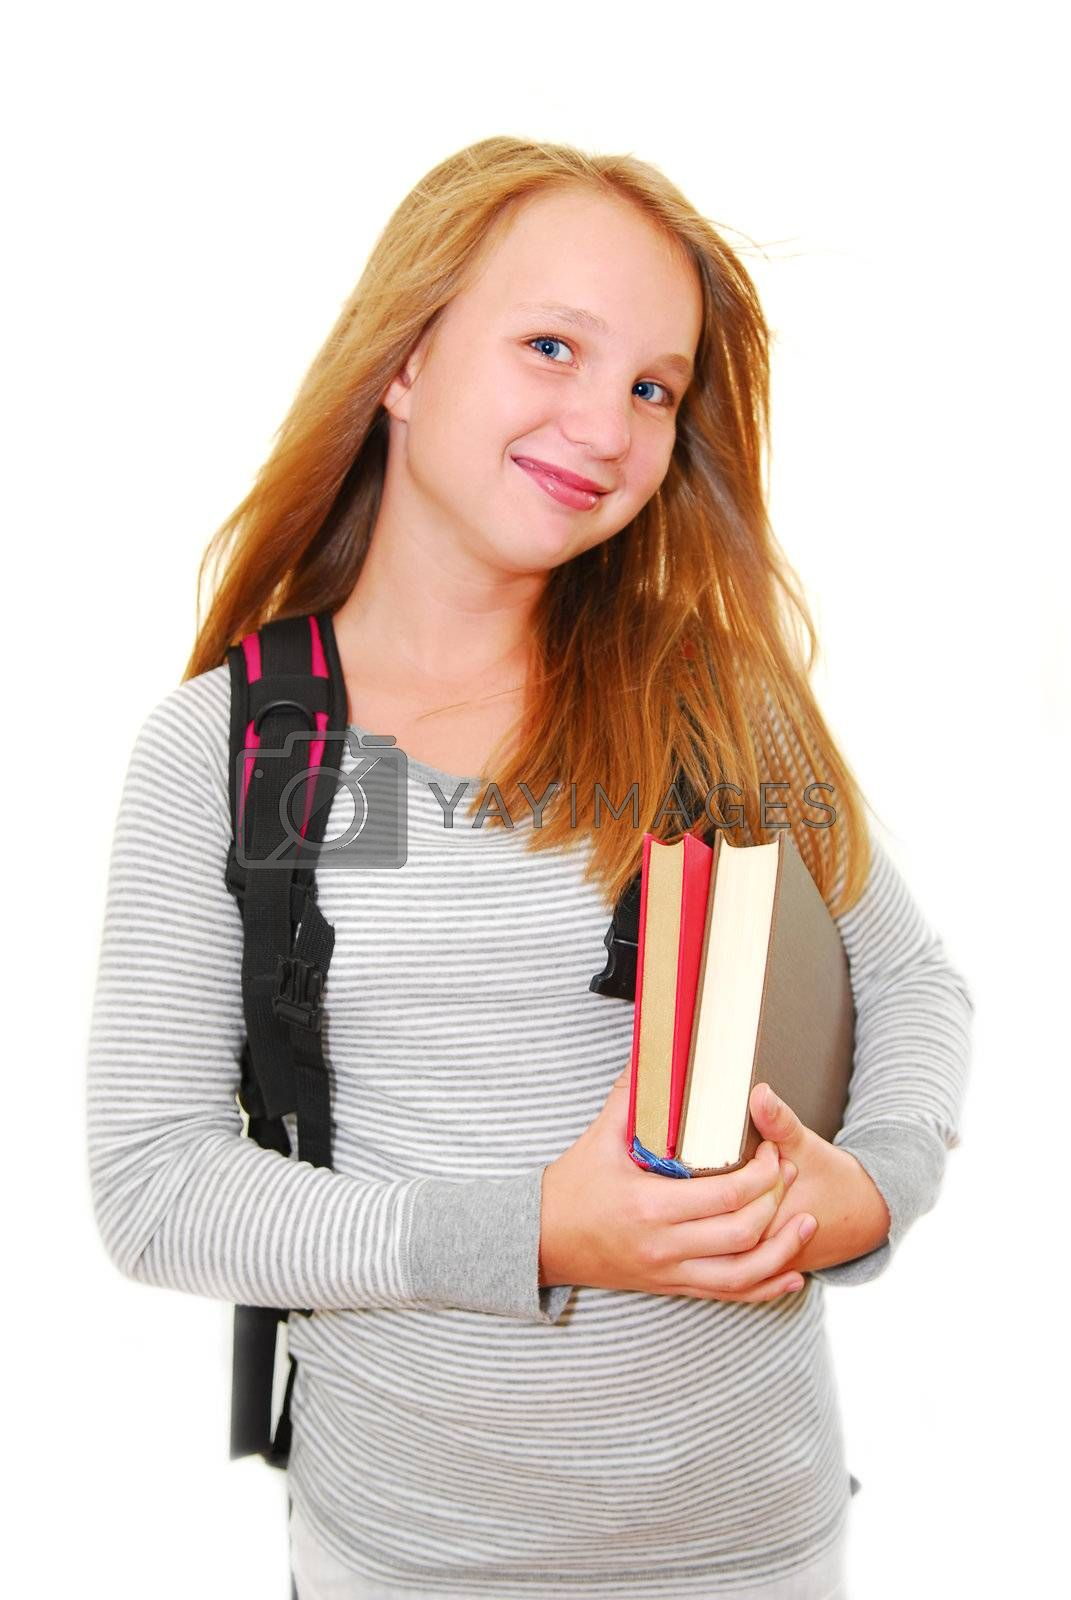 Young smiling school girl with backback and books isolated on white background